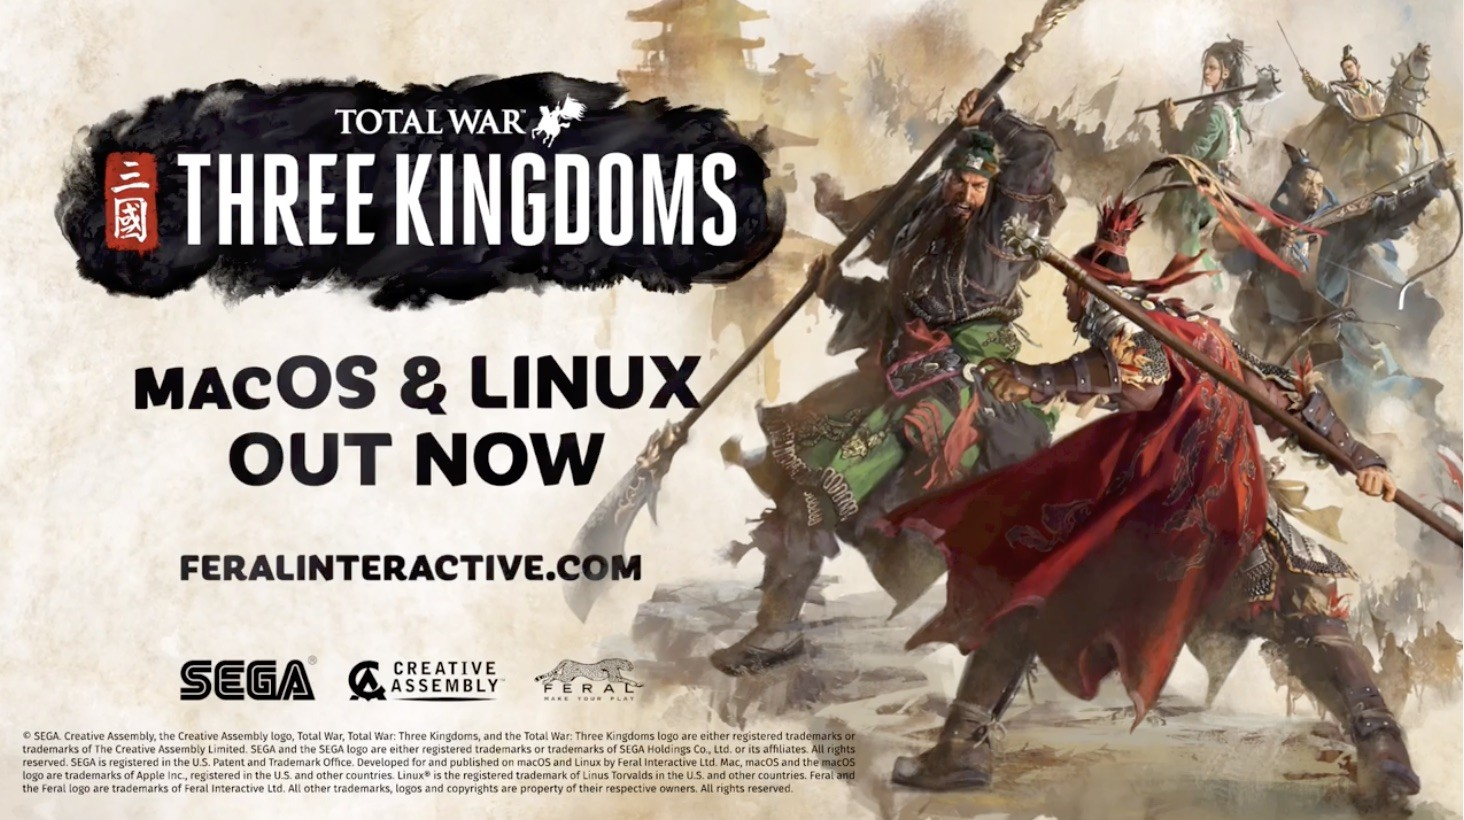 Total War: Three Kingdoms Out Now for Linux and Mac, Ported